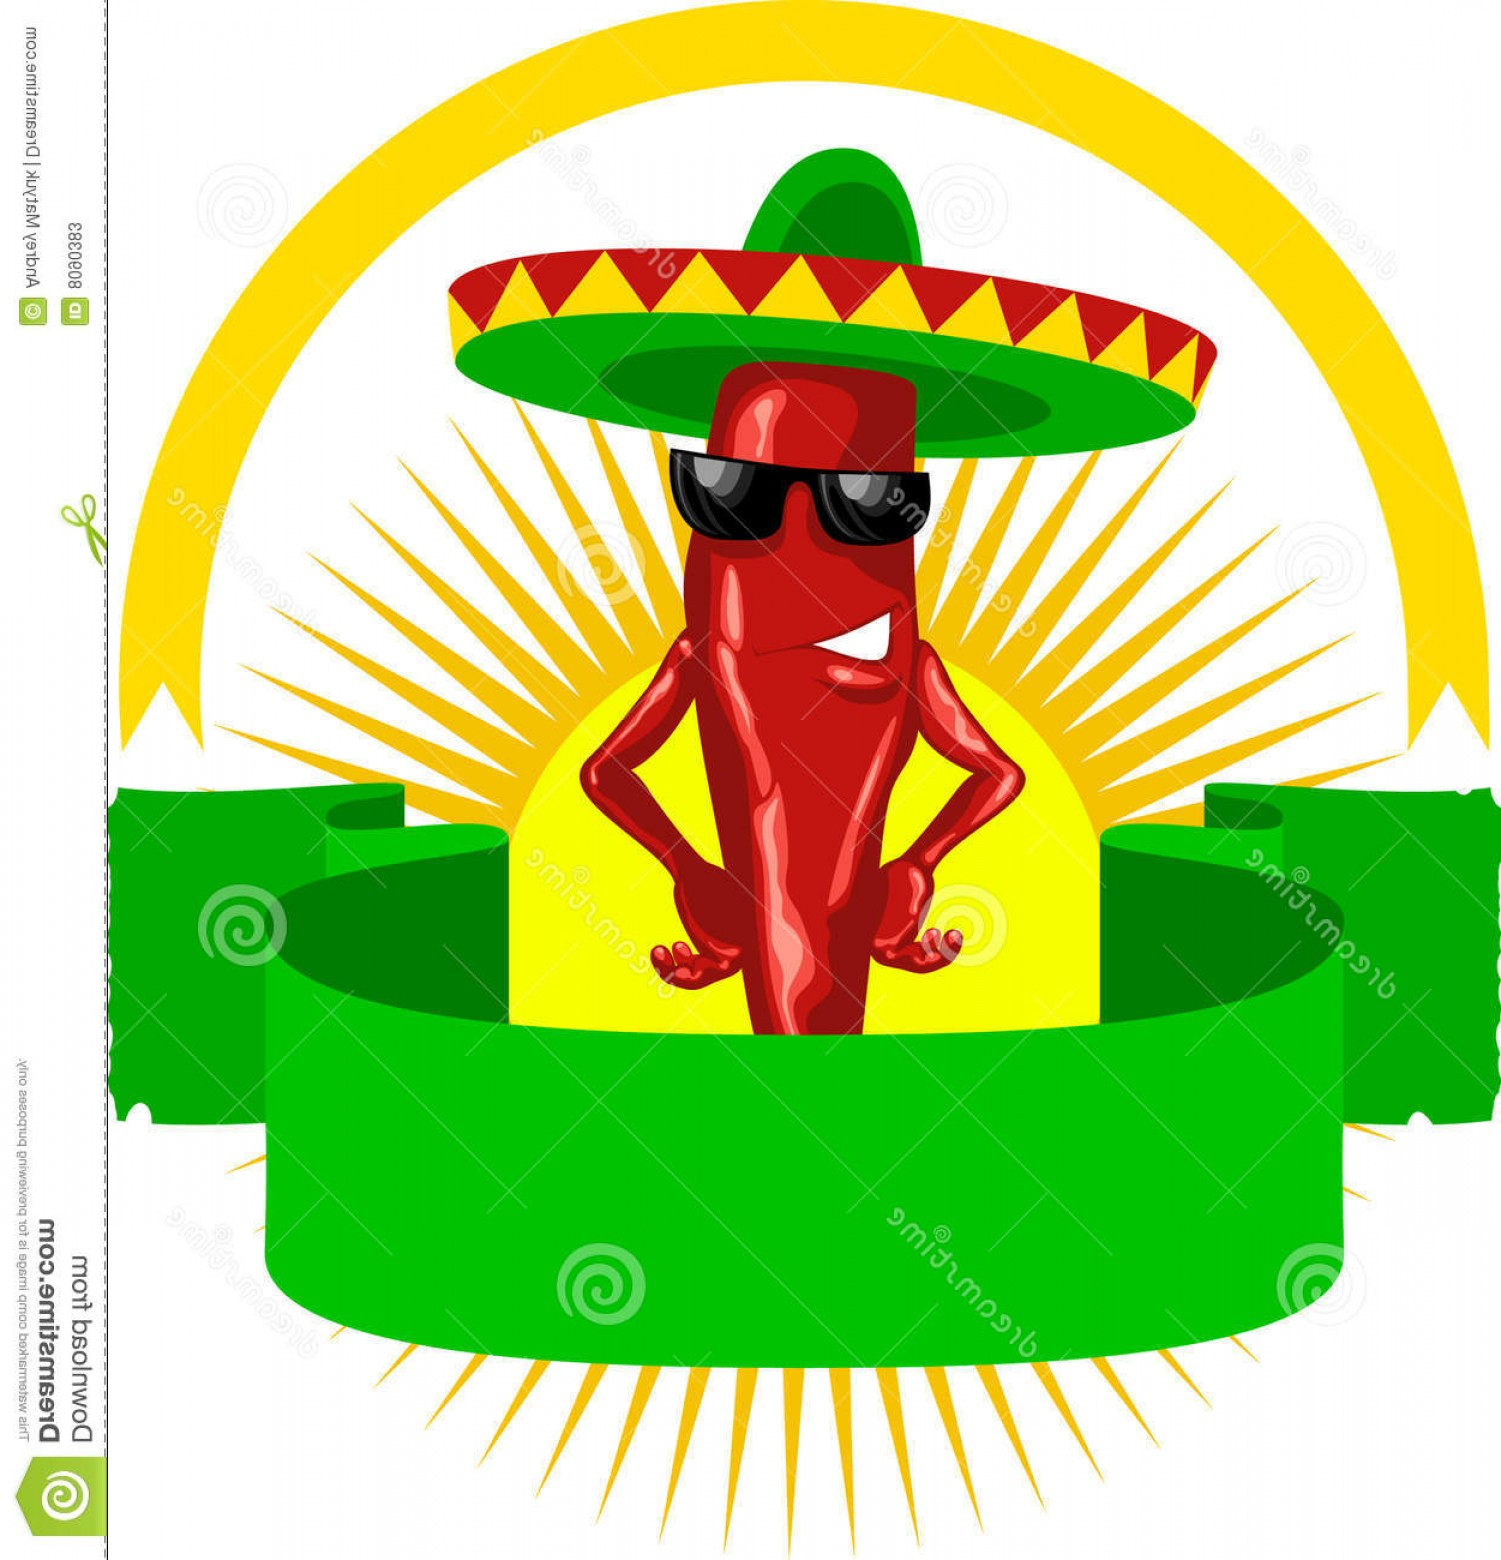 Vector Mexican Chili: Stock Photos Label Mexican Chili Image